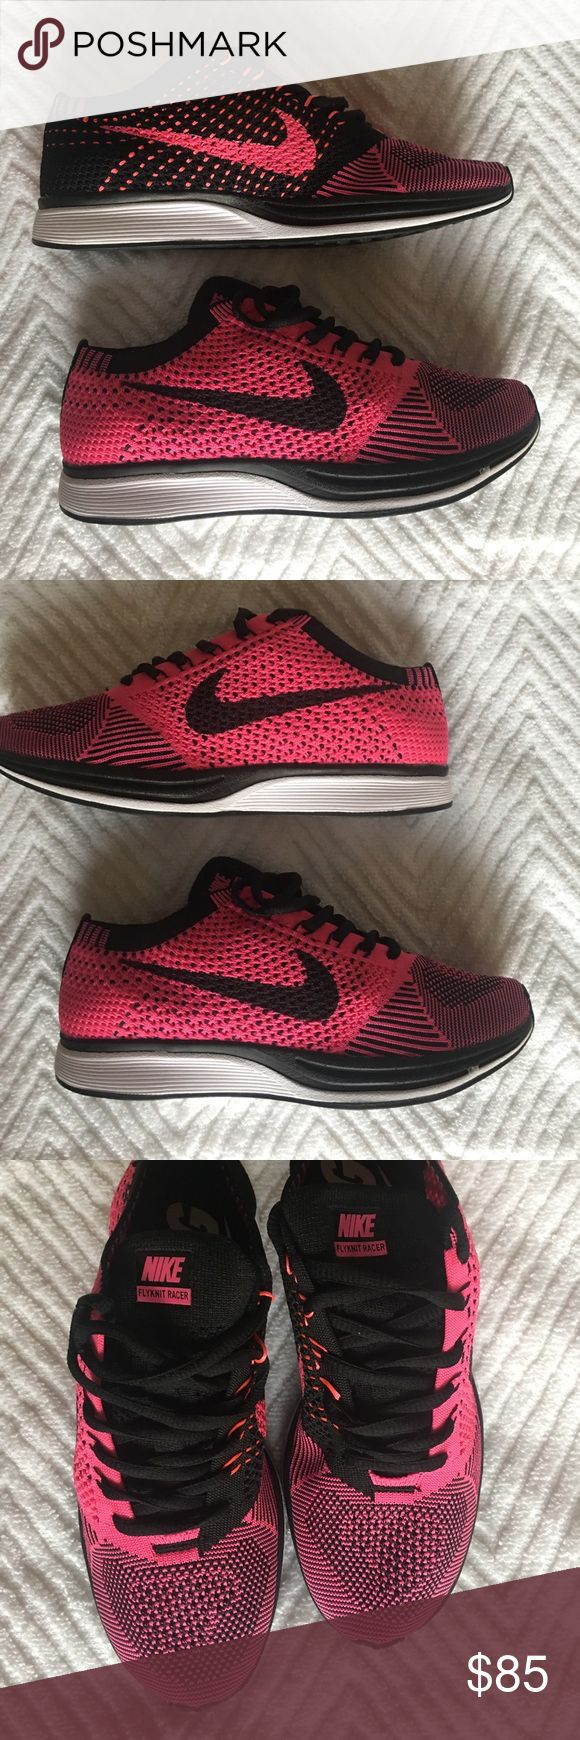 Nike Ladies Flyknit racer Sz 8 Nike Ladies Flyknit racer Sz 8 pink/black Nike Shoes Sneakers